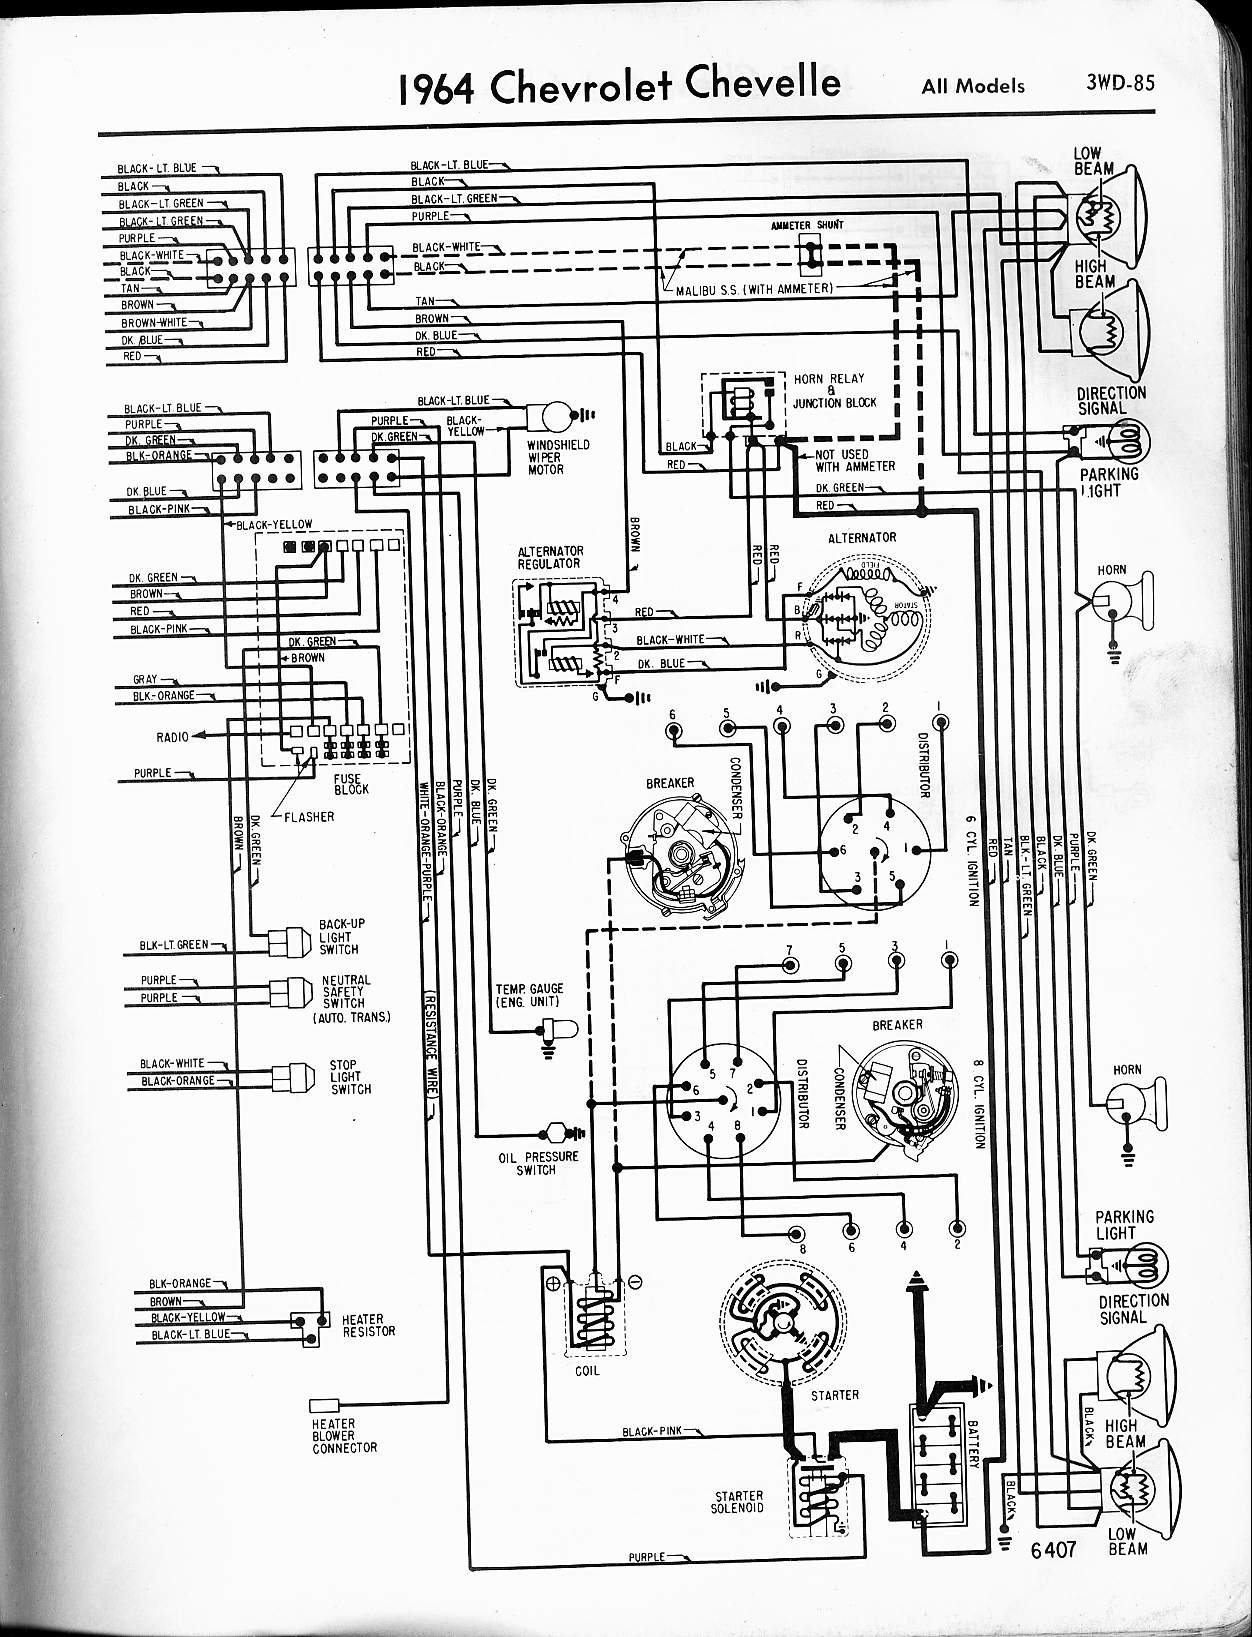 1975 Corvette Tachometer Wiring Schematic | Wiring Diagram Liries on 1975 corvette tail light wiring diagram, 1975 corvette power window wiring diagram, 1975 corvette fuse block diagram, 1975 corvette seat belt wiring diagram,